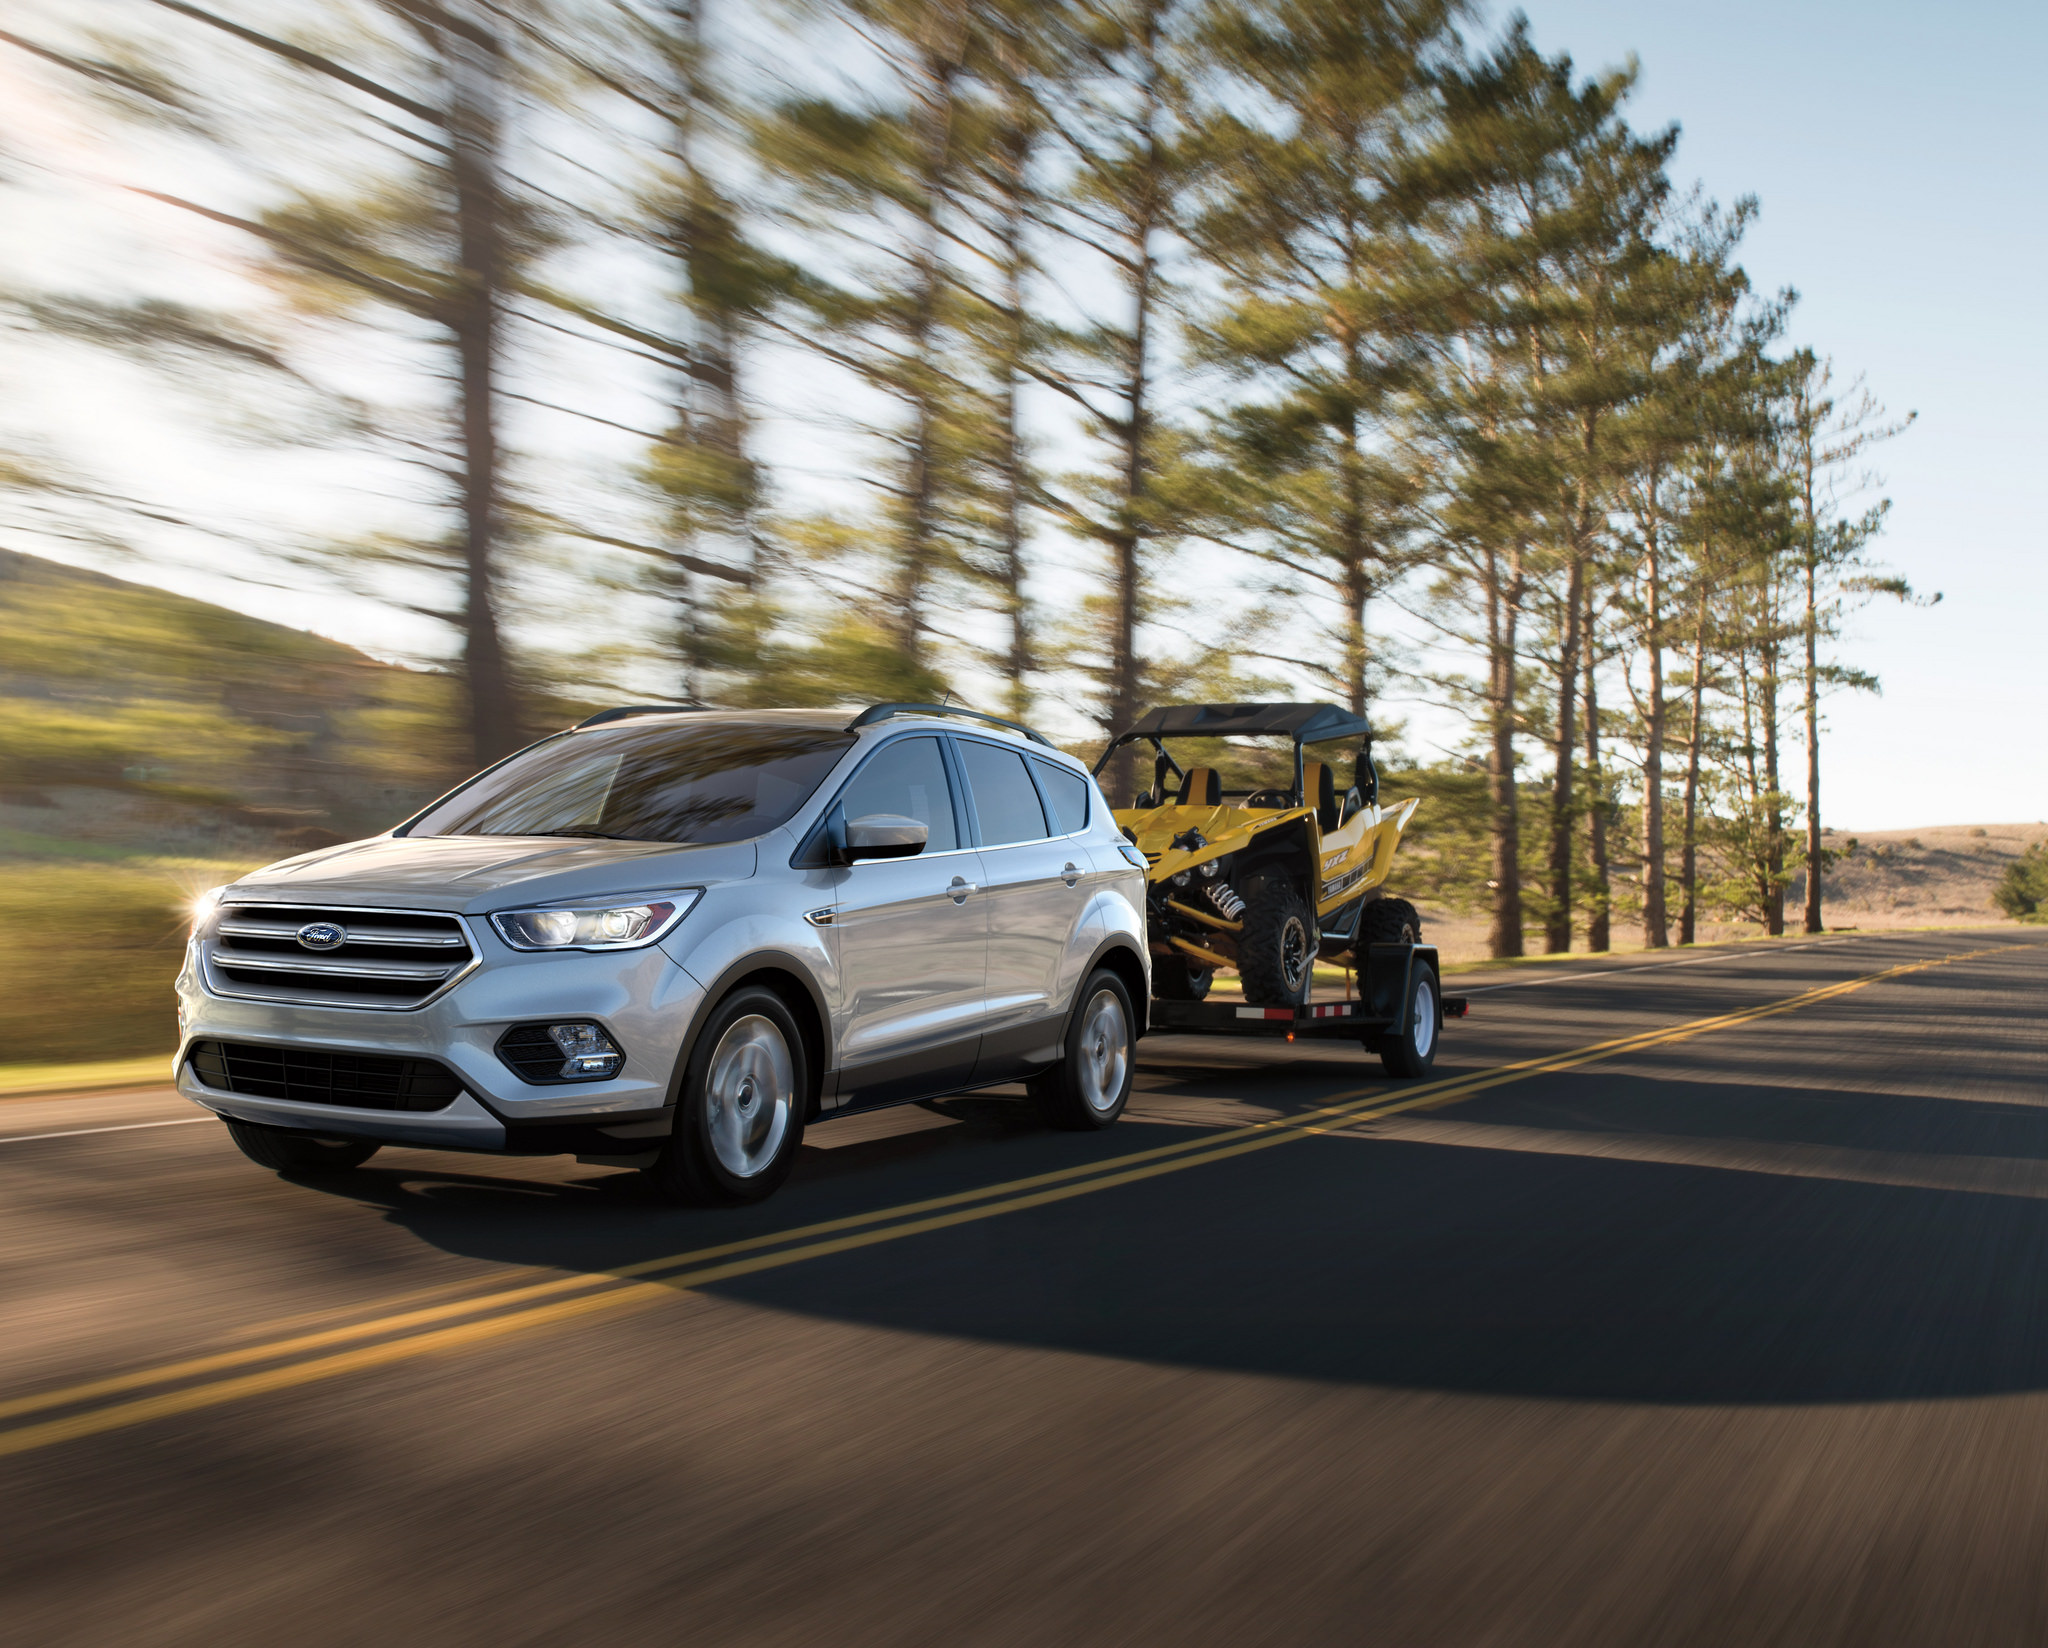 Buy the 2018 Ford Escape, for sale now at Sun State Ford in Orlando, Florida